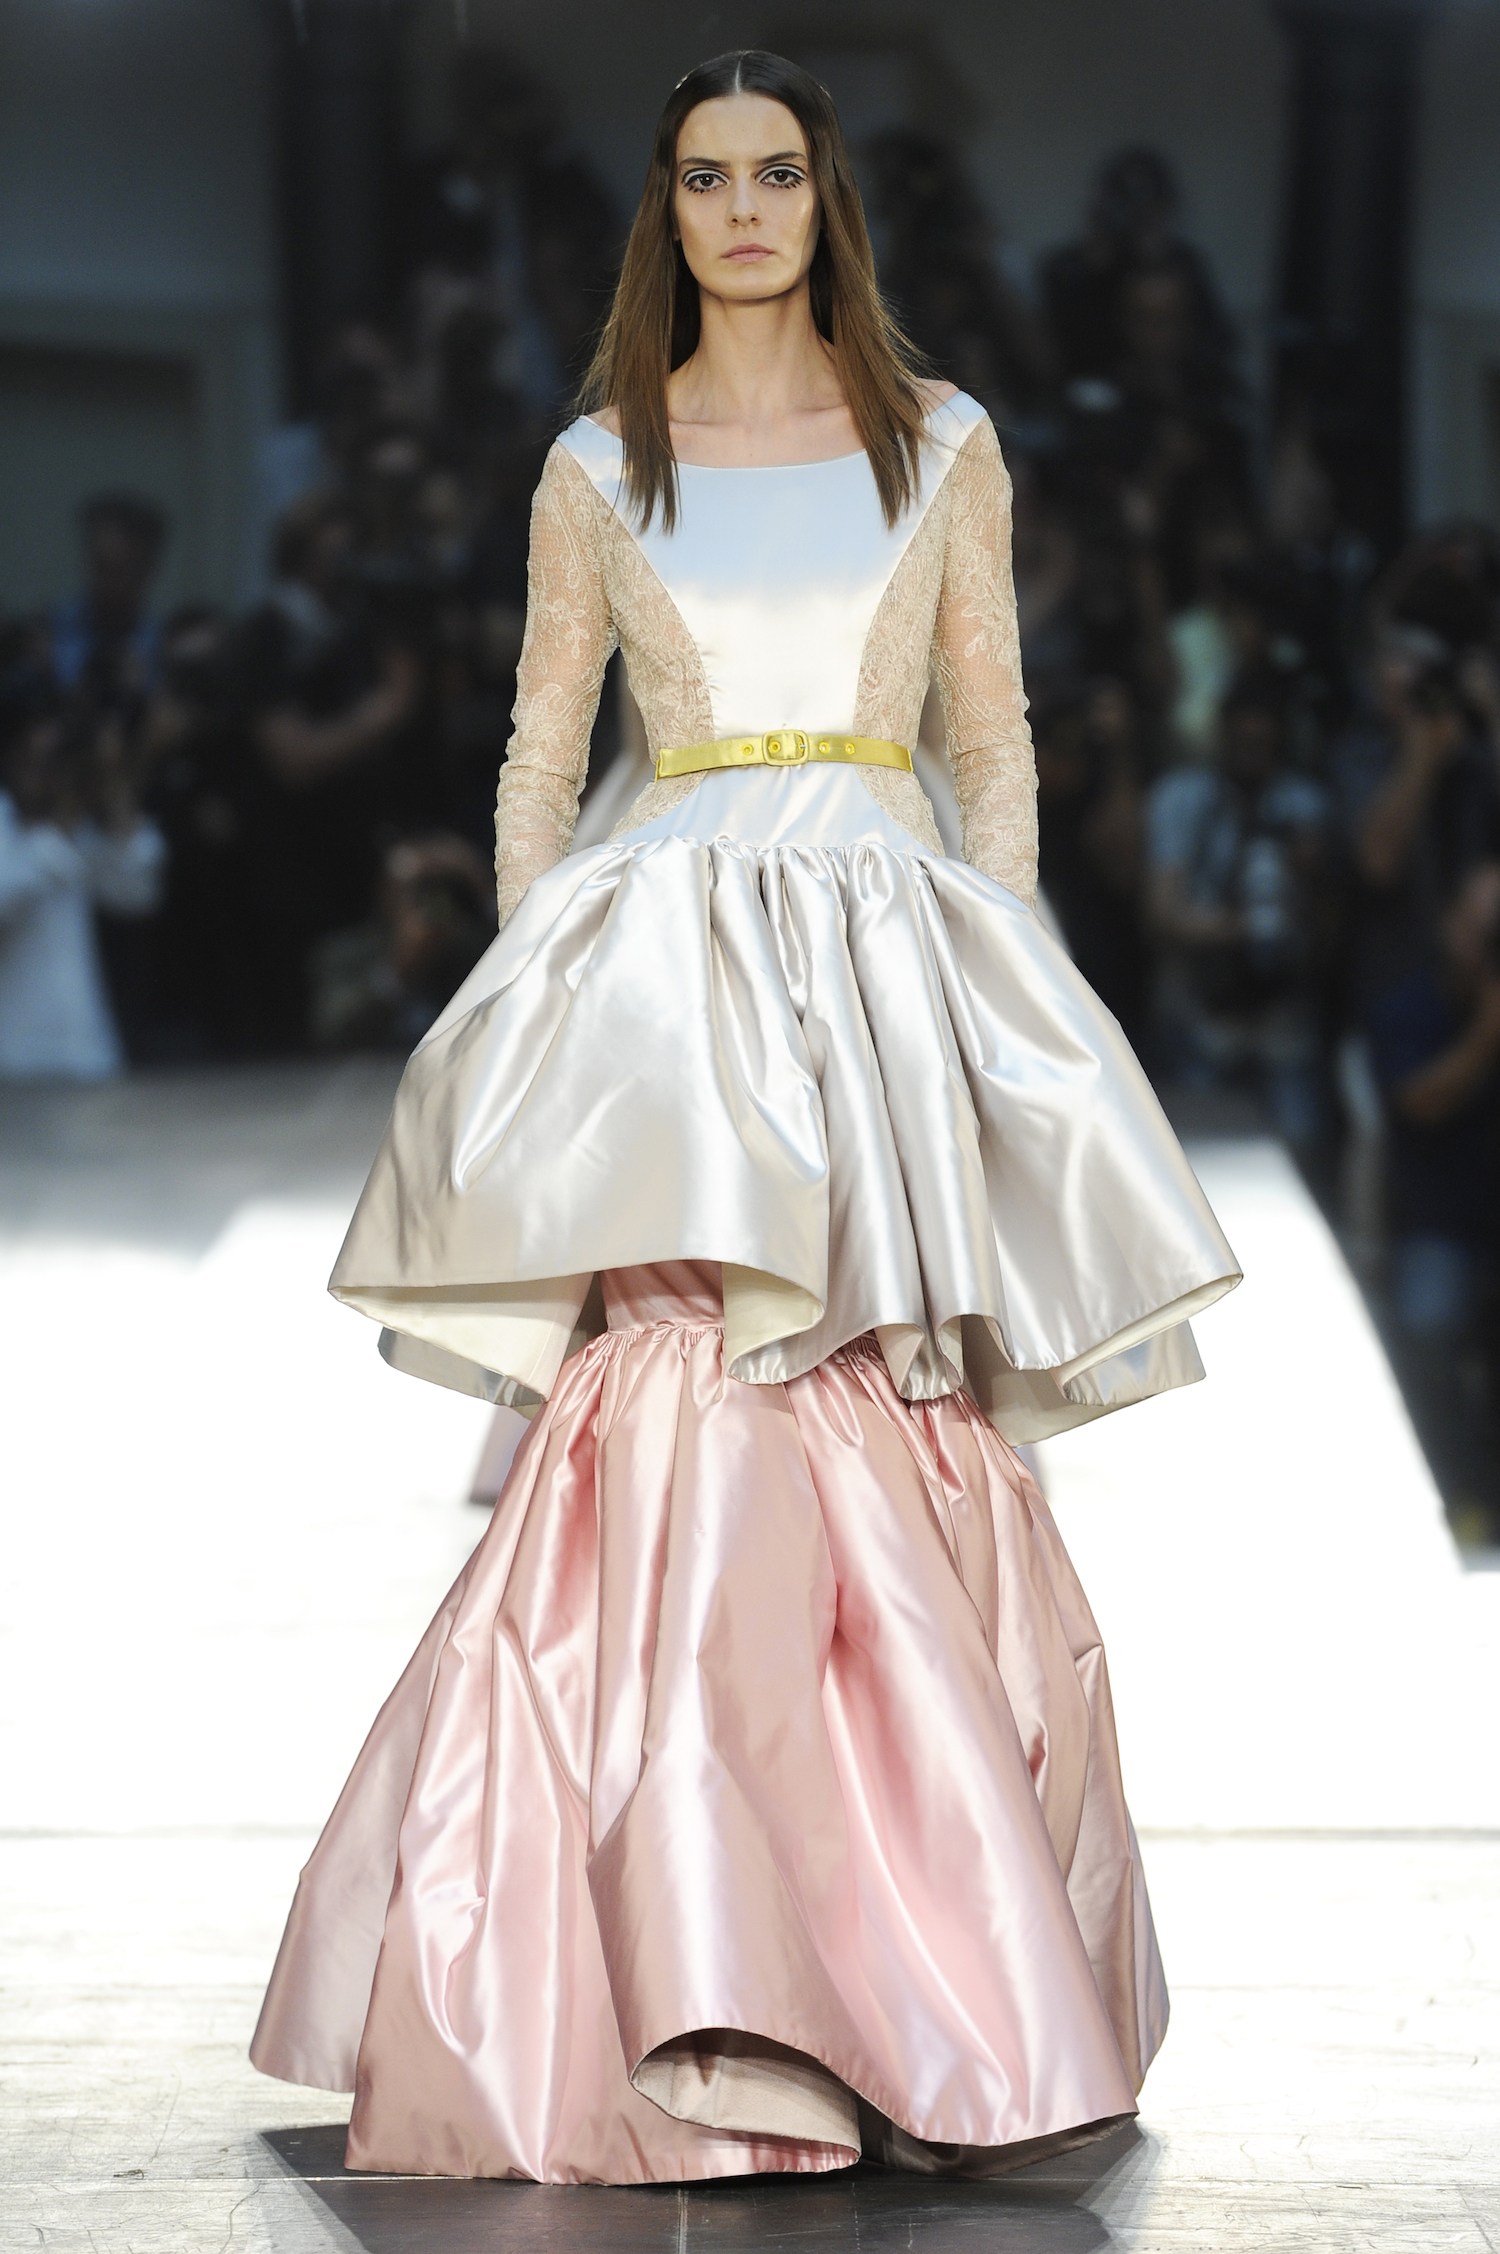 ALEXIS MABILLE HAUTE COUTURE - Fall Winter 2016/17